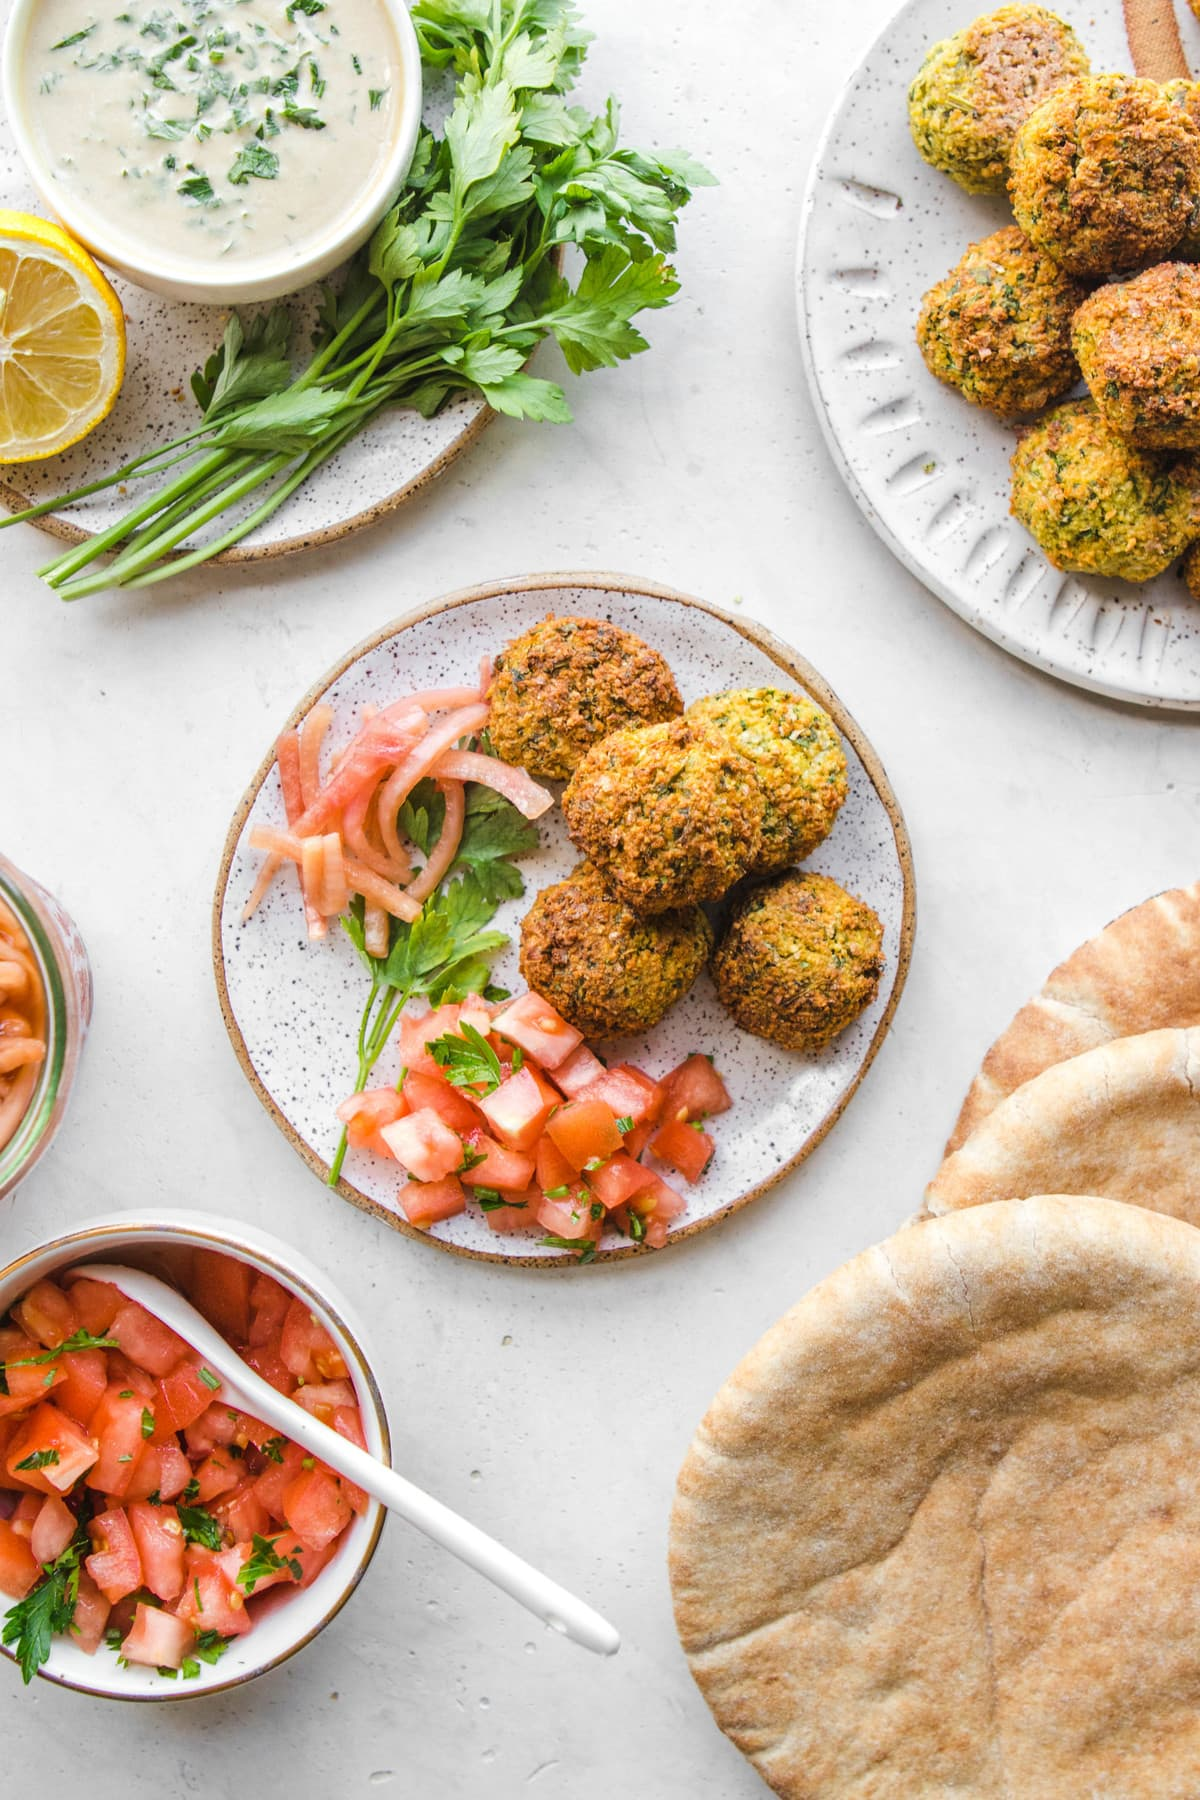 falafel with accoutrements